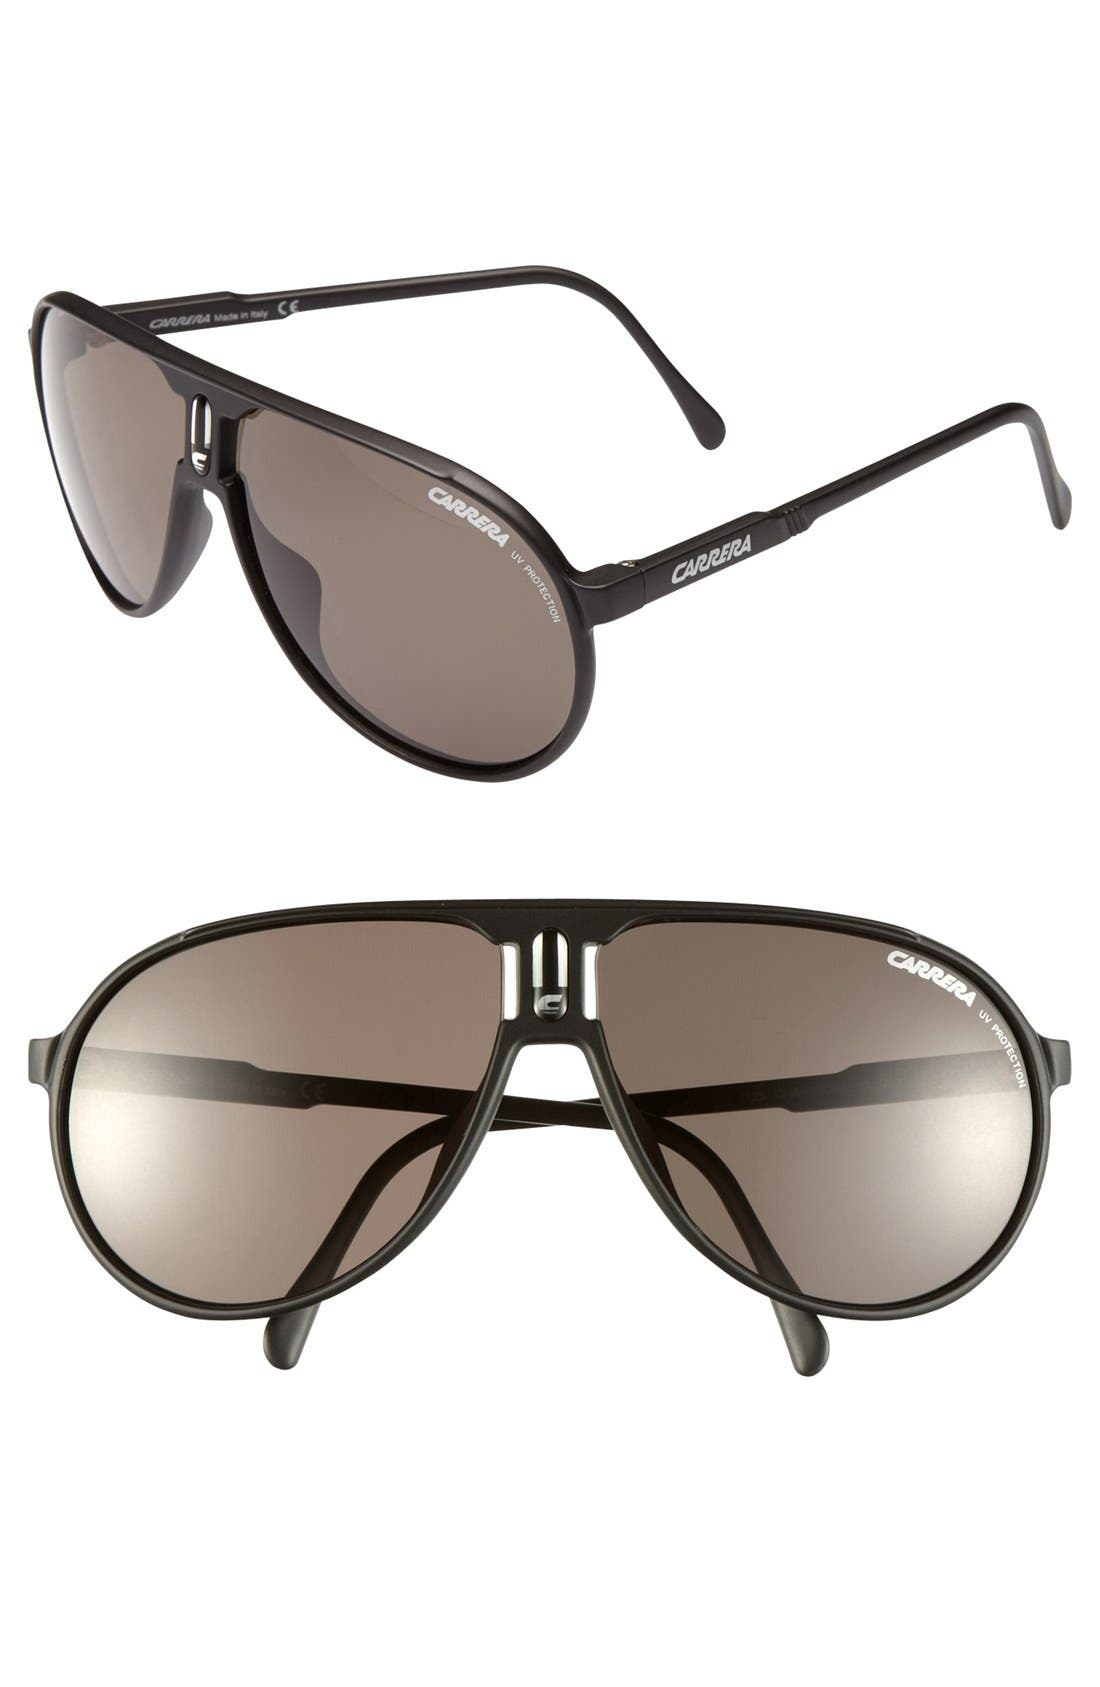 Alternate Image 1 Selected - Carrera Eyewear 62mm Aviator Sunglasses